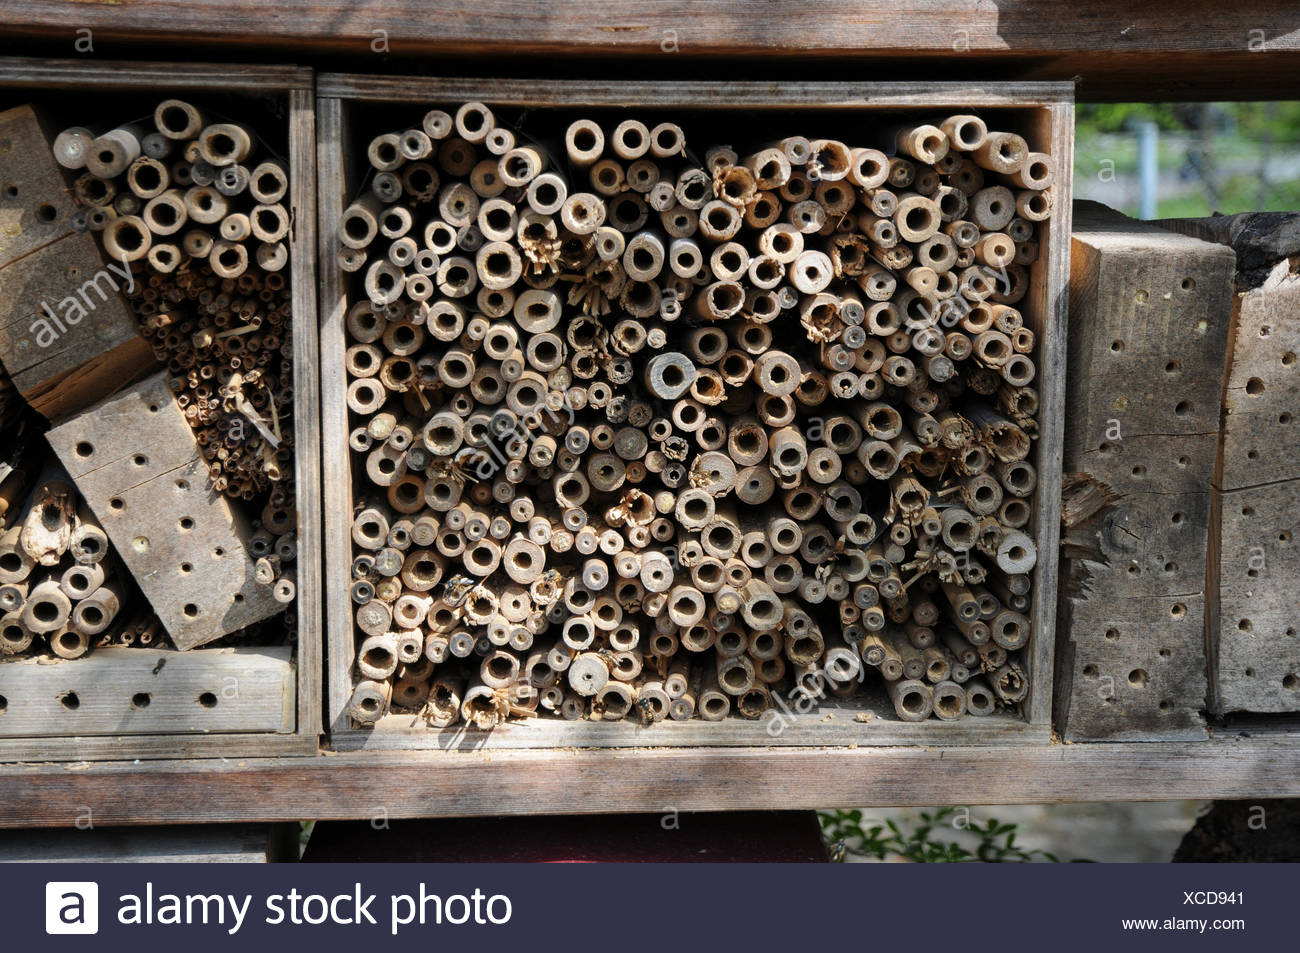 Insect house with wild bees - Stock Image